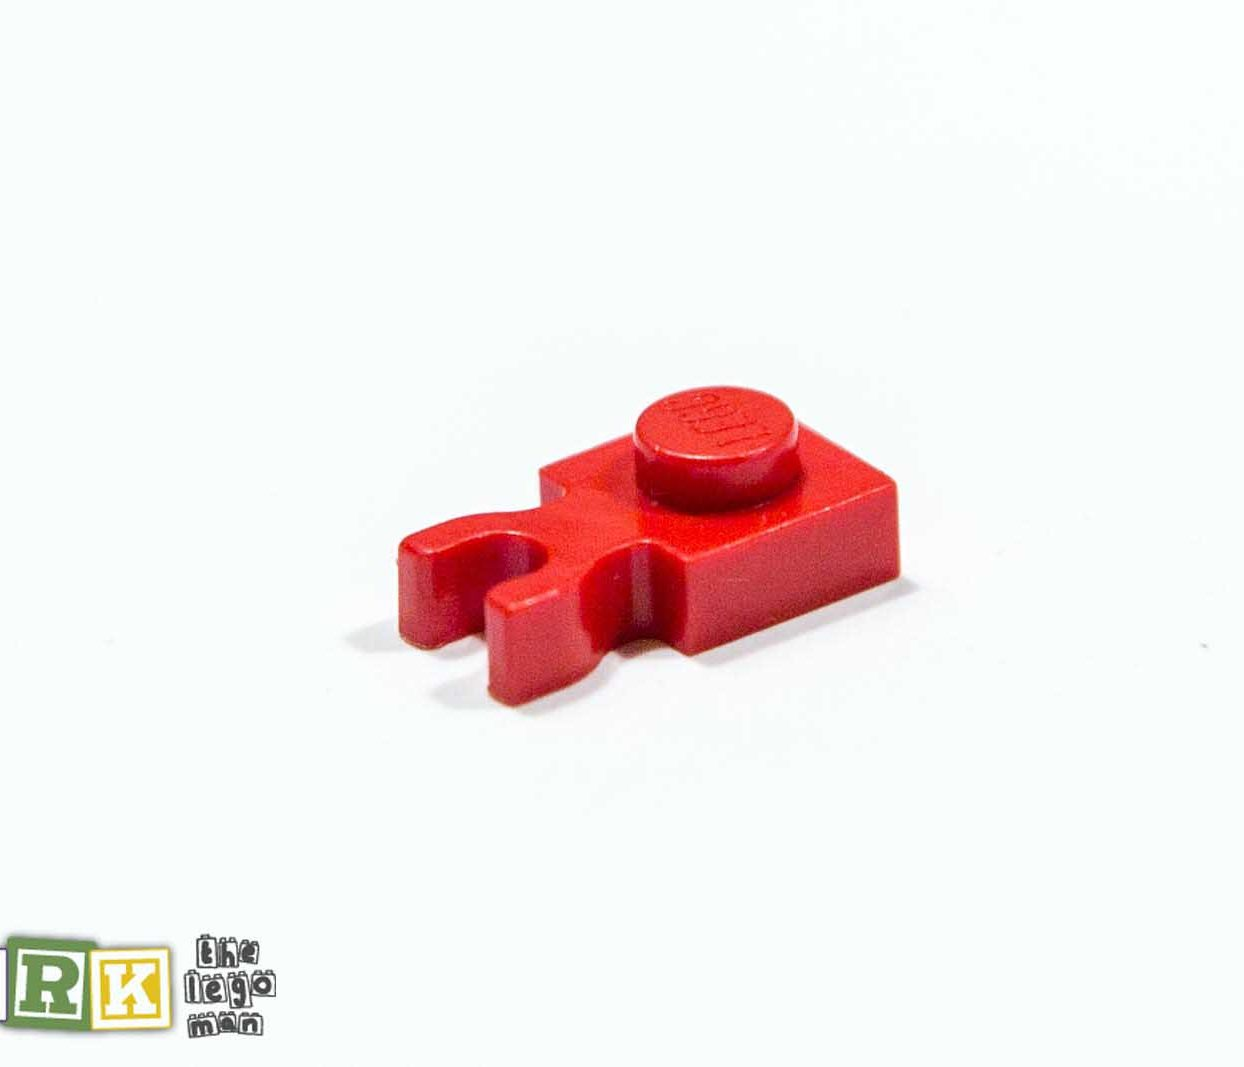 Lego 60897 1x1 Plate With Holder 4588003